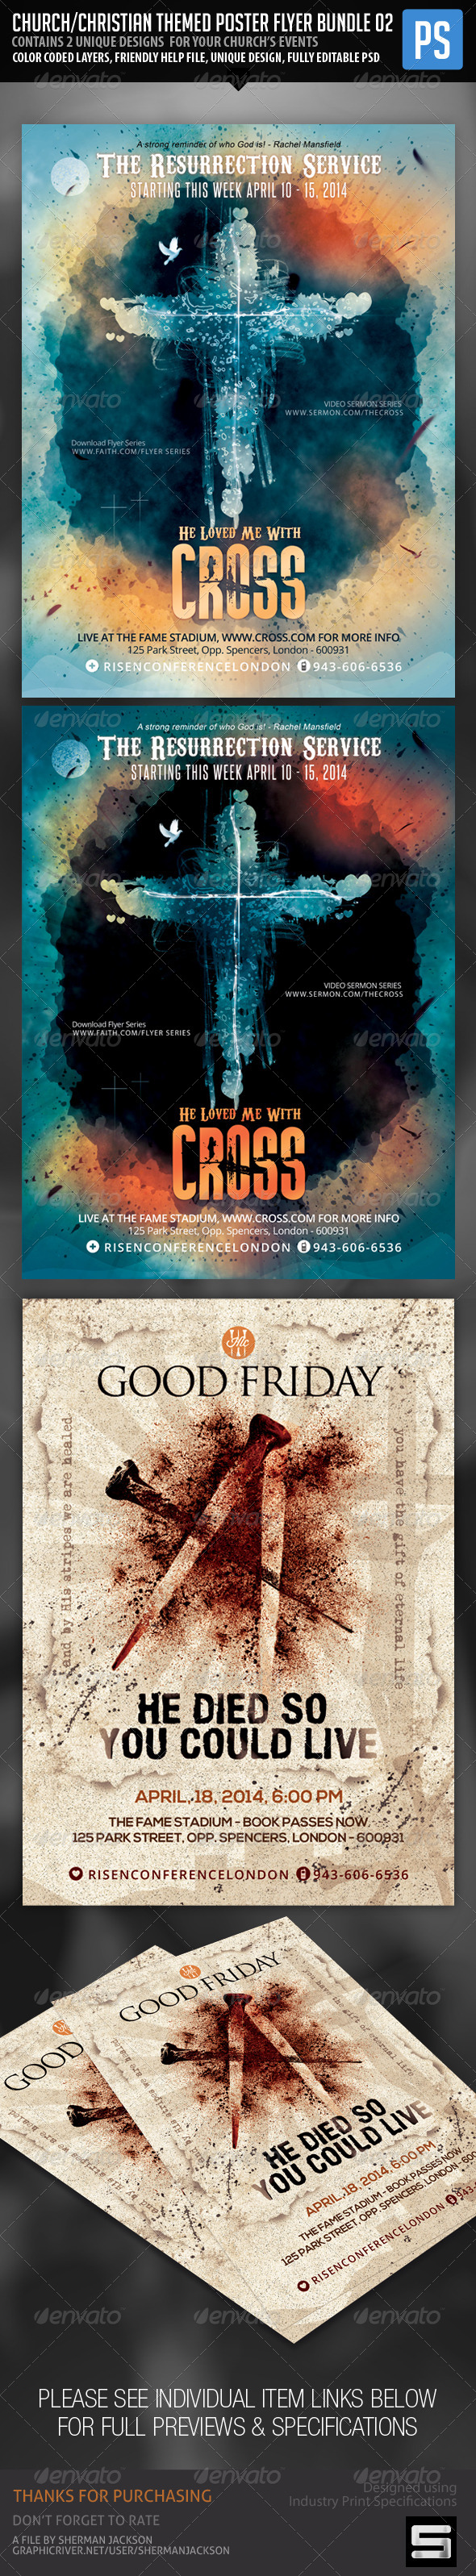 Church/Christian Themed Poster/Flyer Bundle#2 - Church Flyers